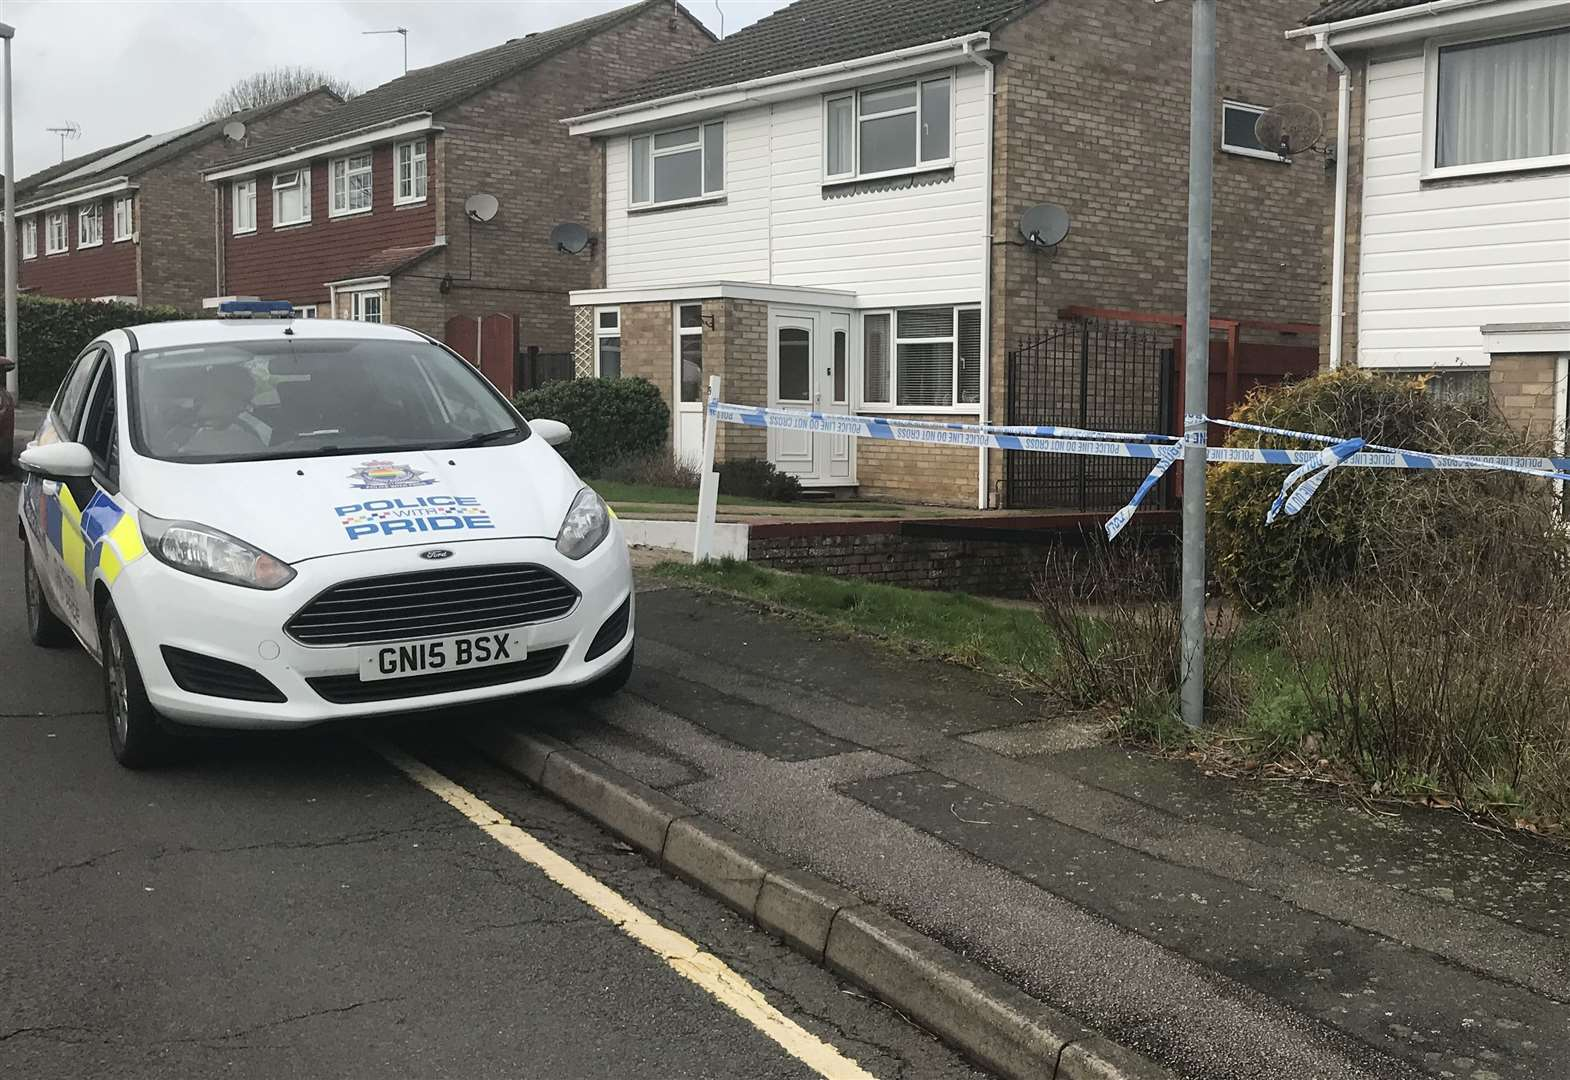 Police found woman's skeleton at house